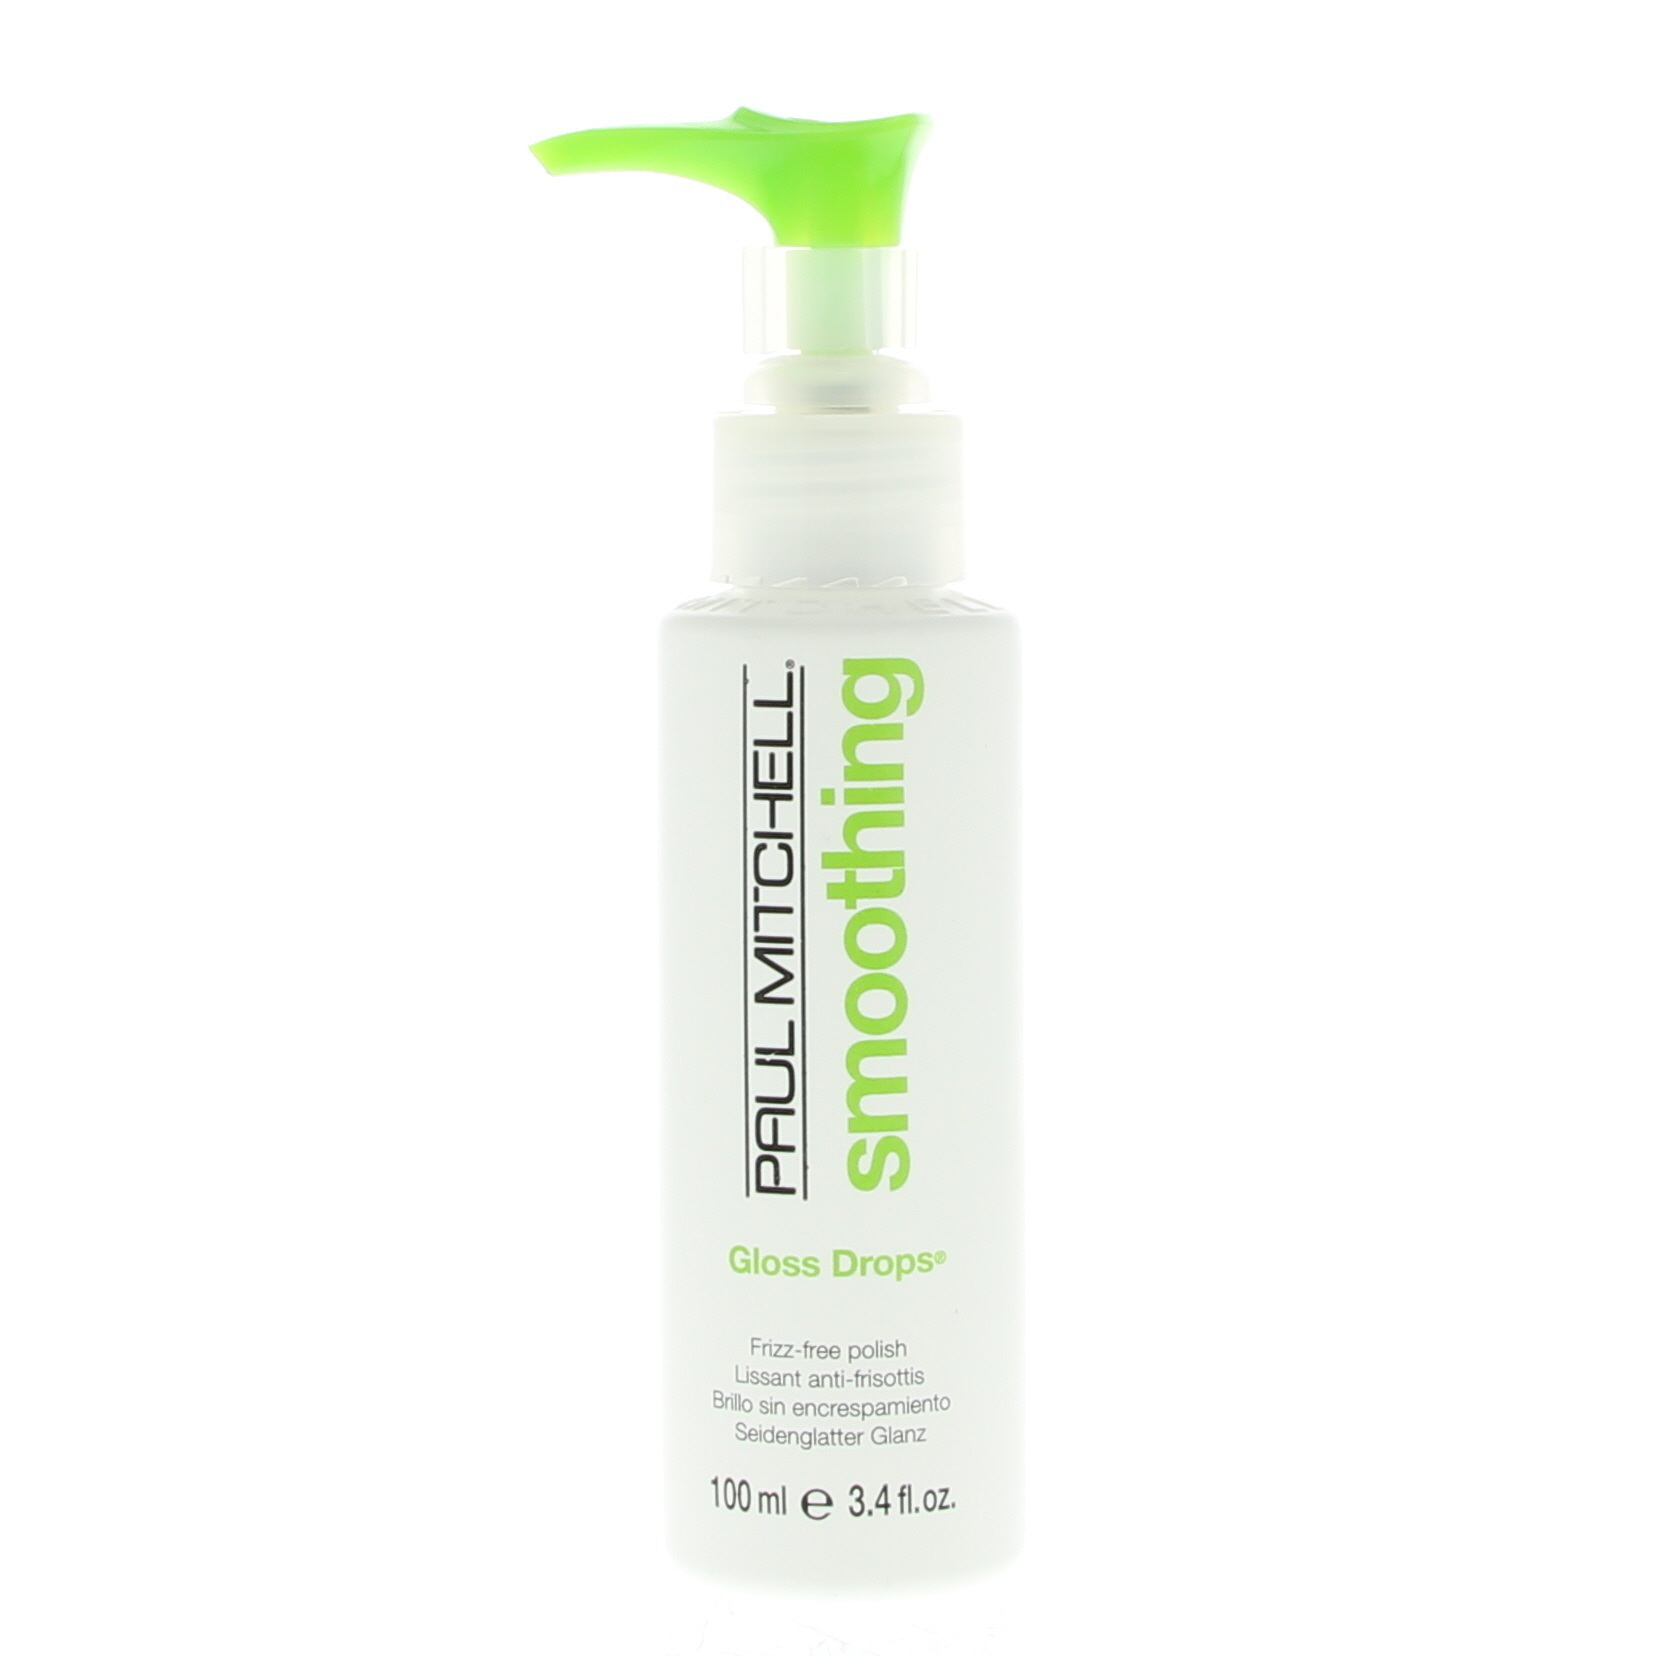 Paul Mitchell Smoothing Gloss Drops Serum Weerbarstig Haar 100ml